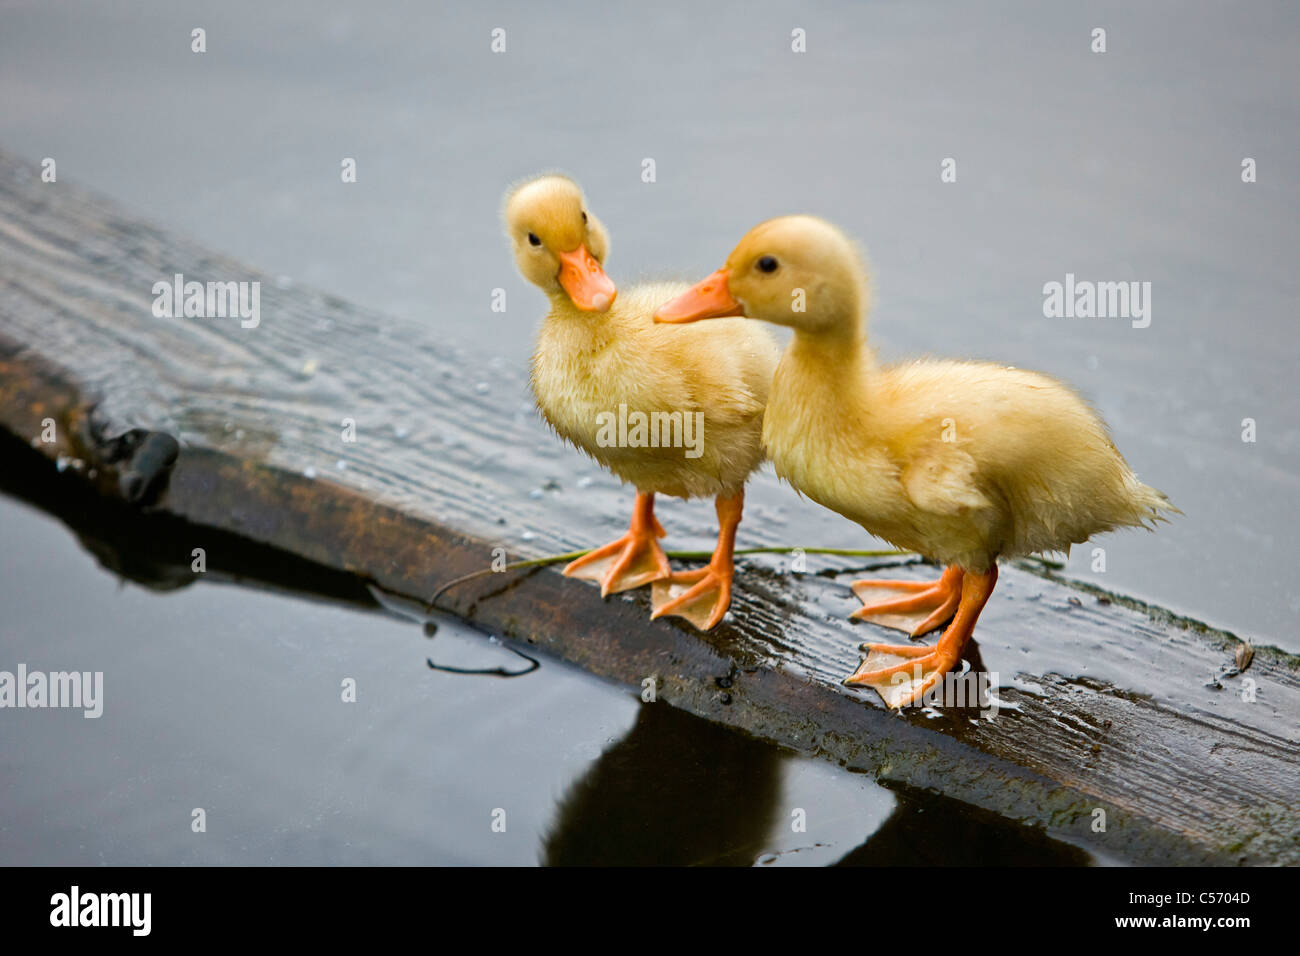 The Netherlands, 's-Graveland. Wild duckings on wood - Stock Image